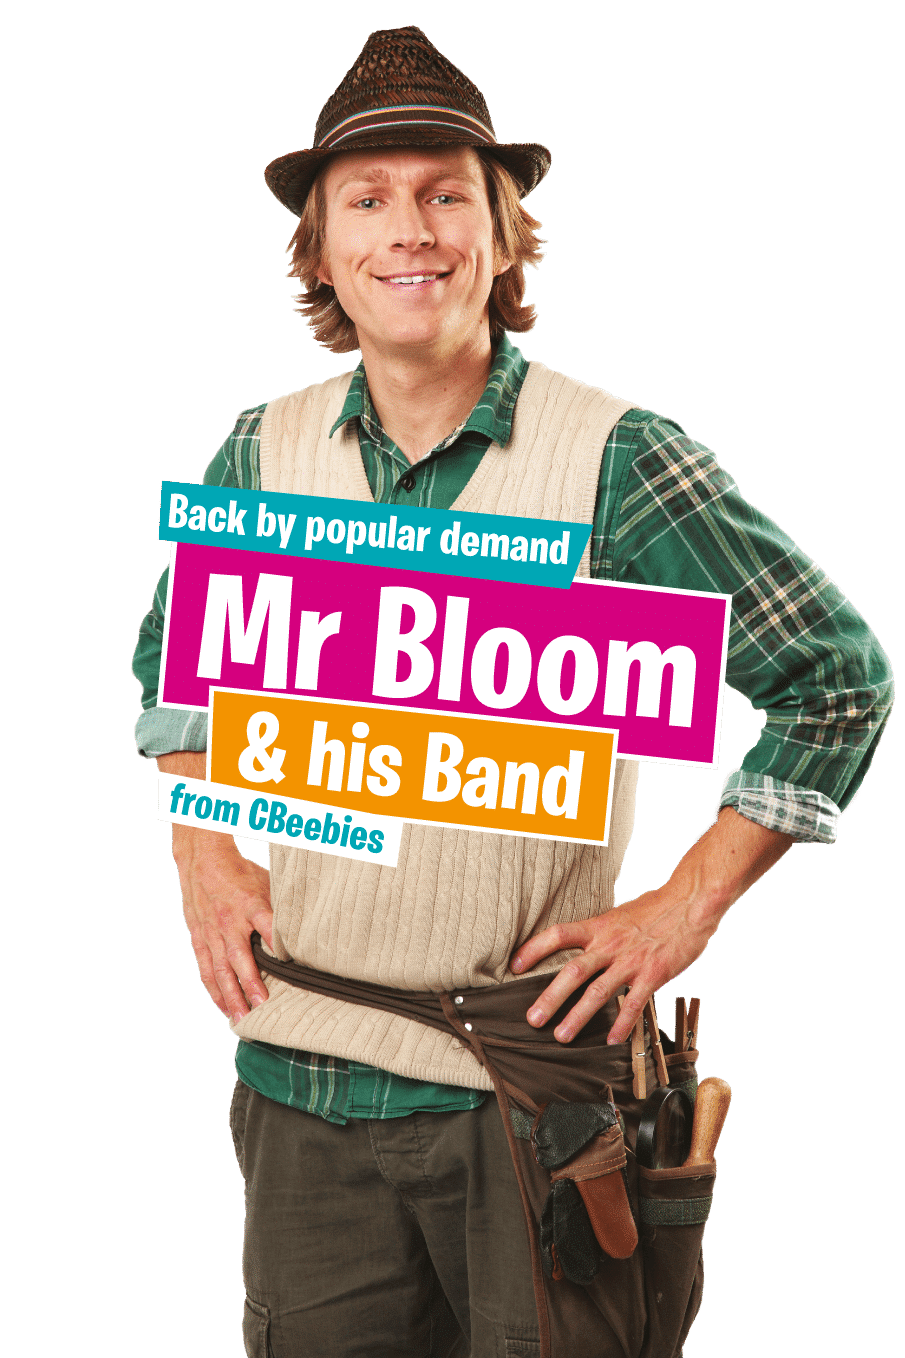 Mr bloom from Cbeebies Springtime Live